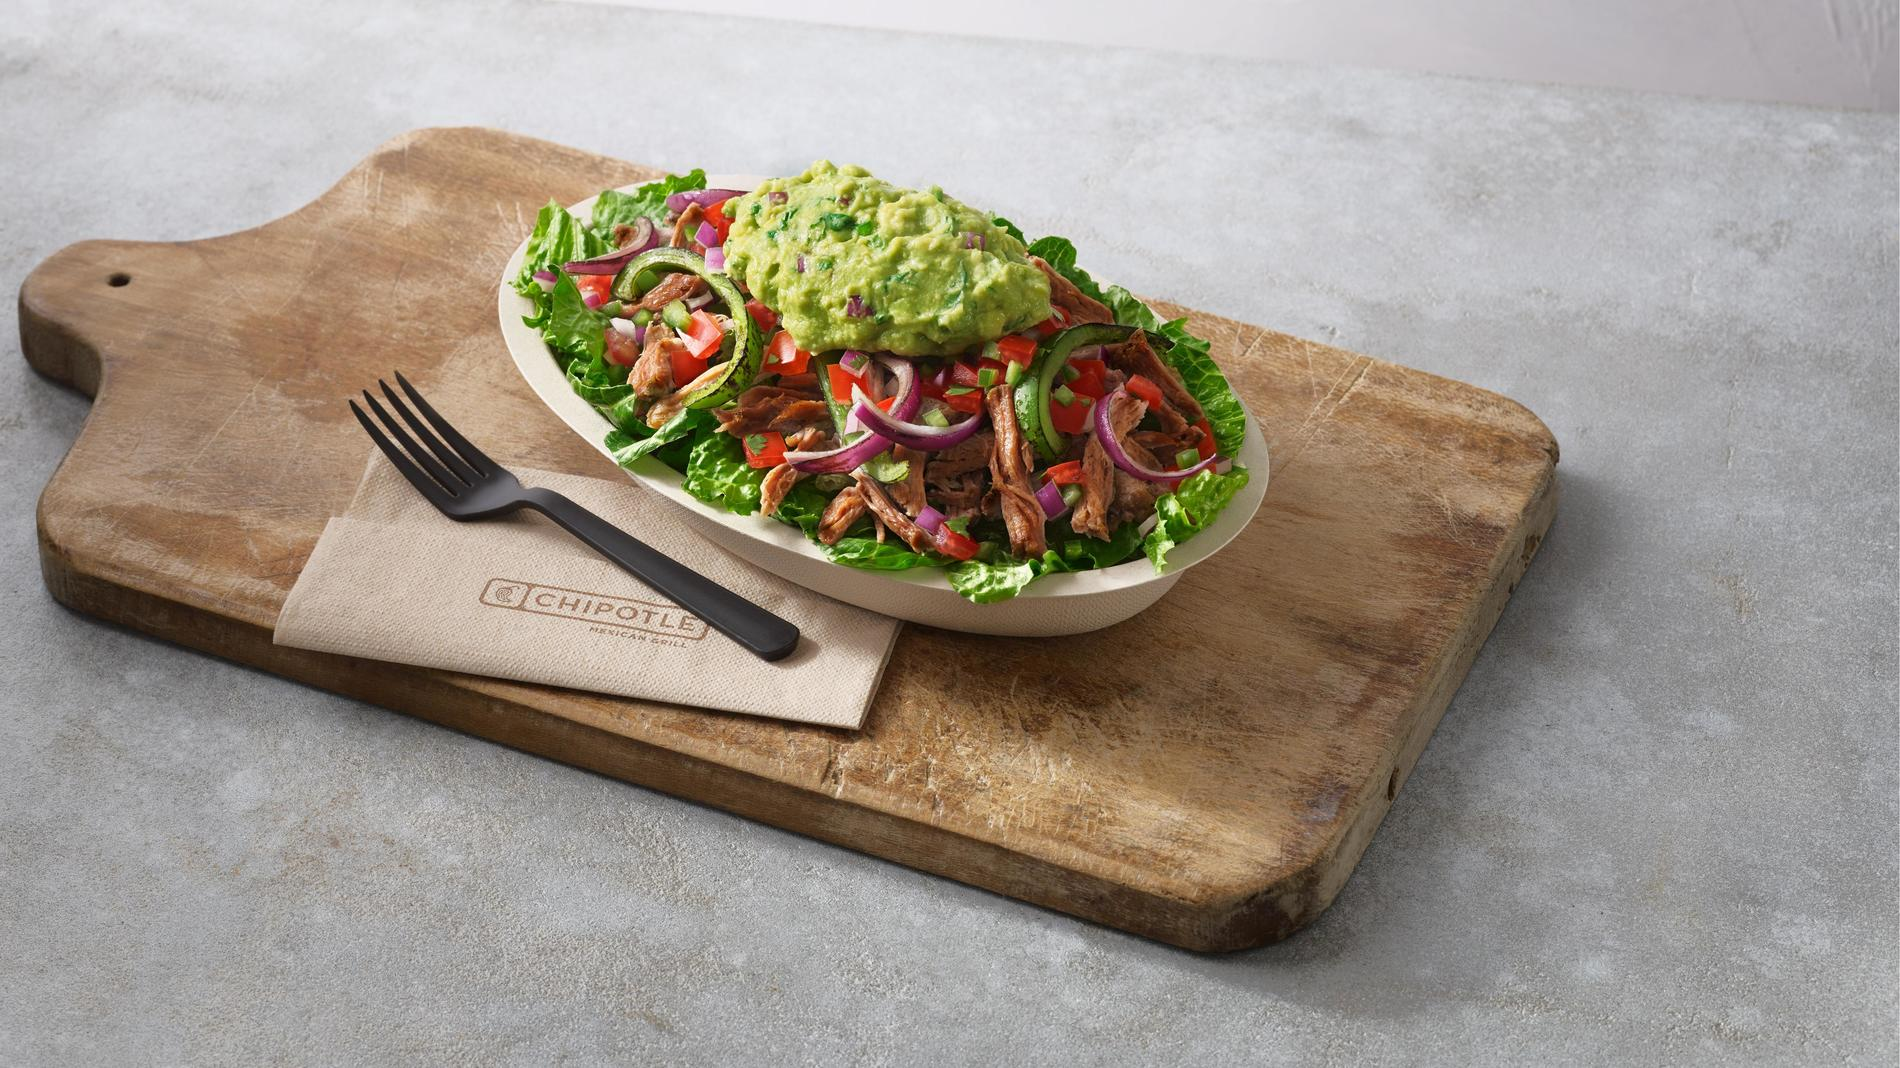 Whole30 salad bowl on a wooden cutting board with a fork and napkin